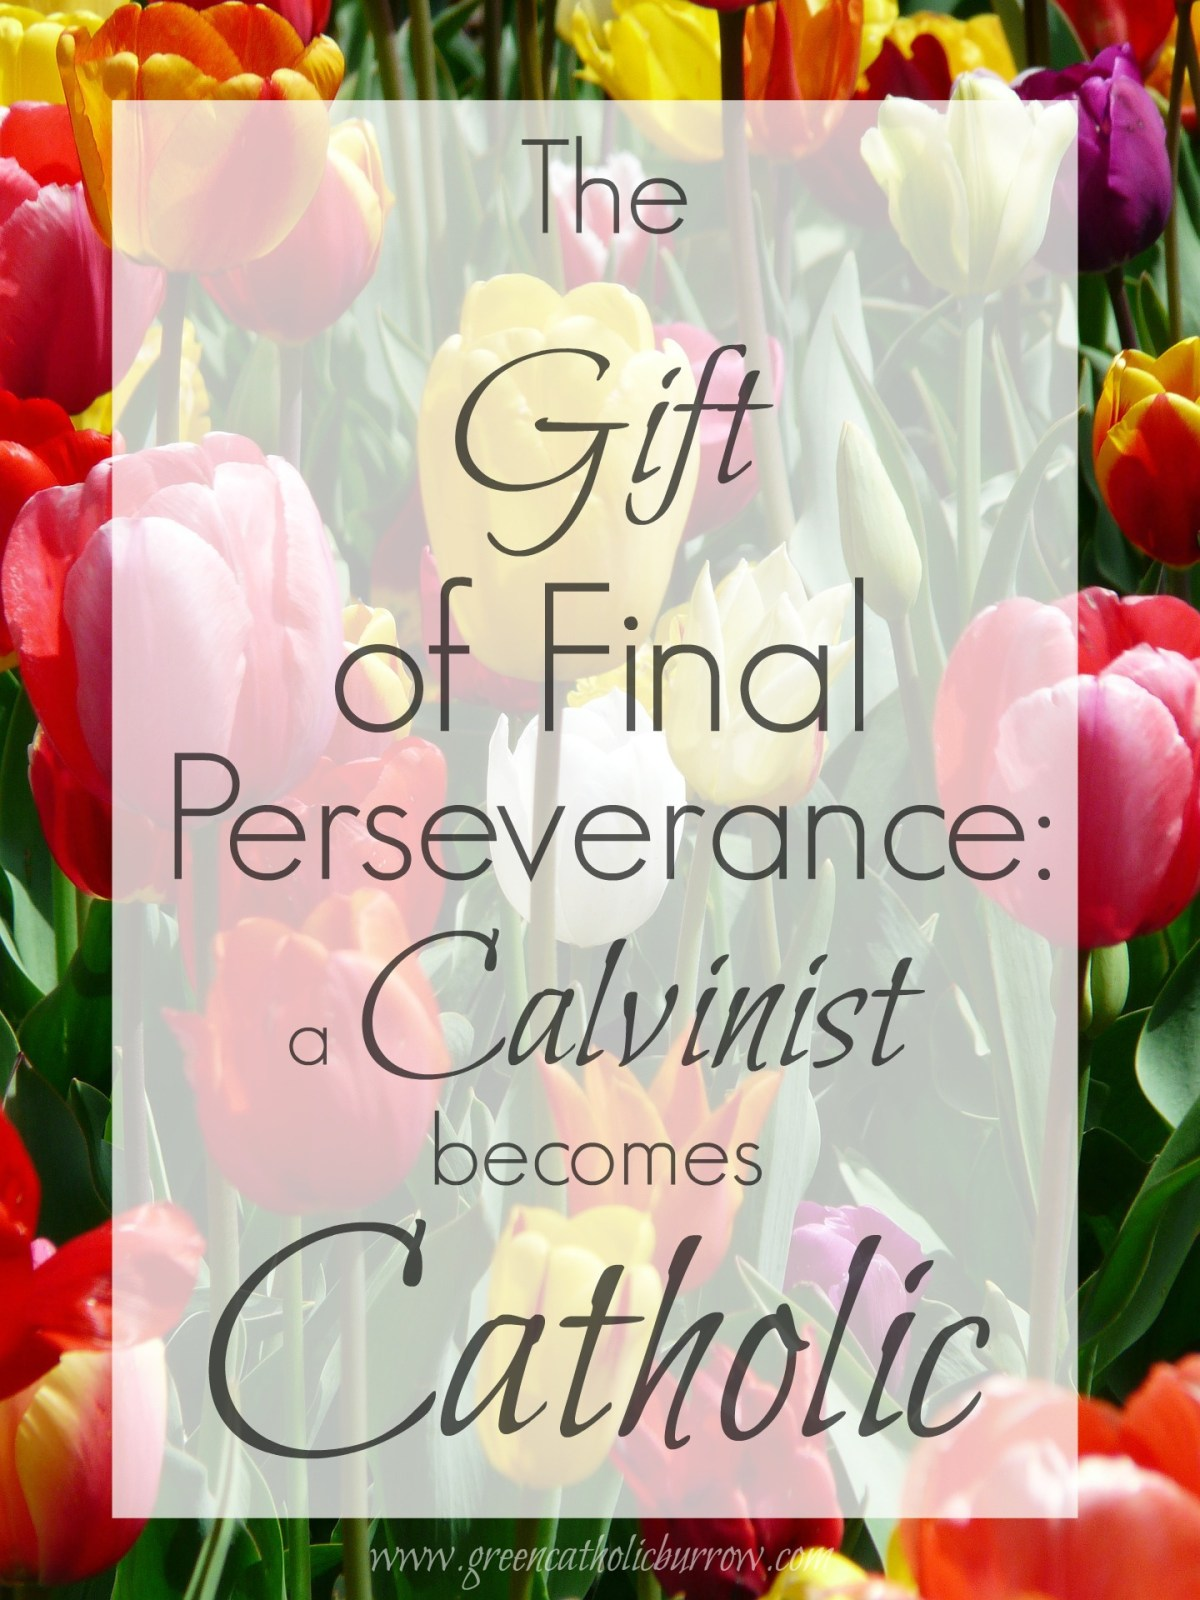 The Gift of Final Perseverance: A Calvinist turned Catholic